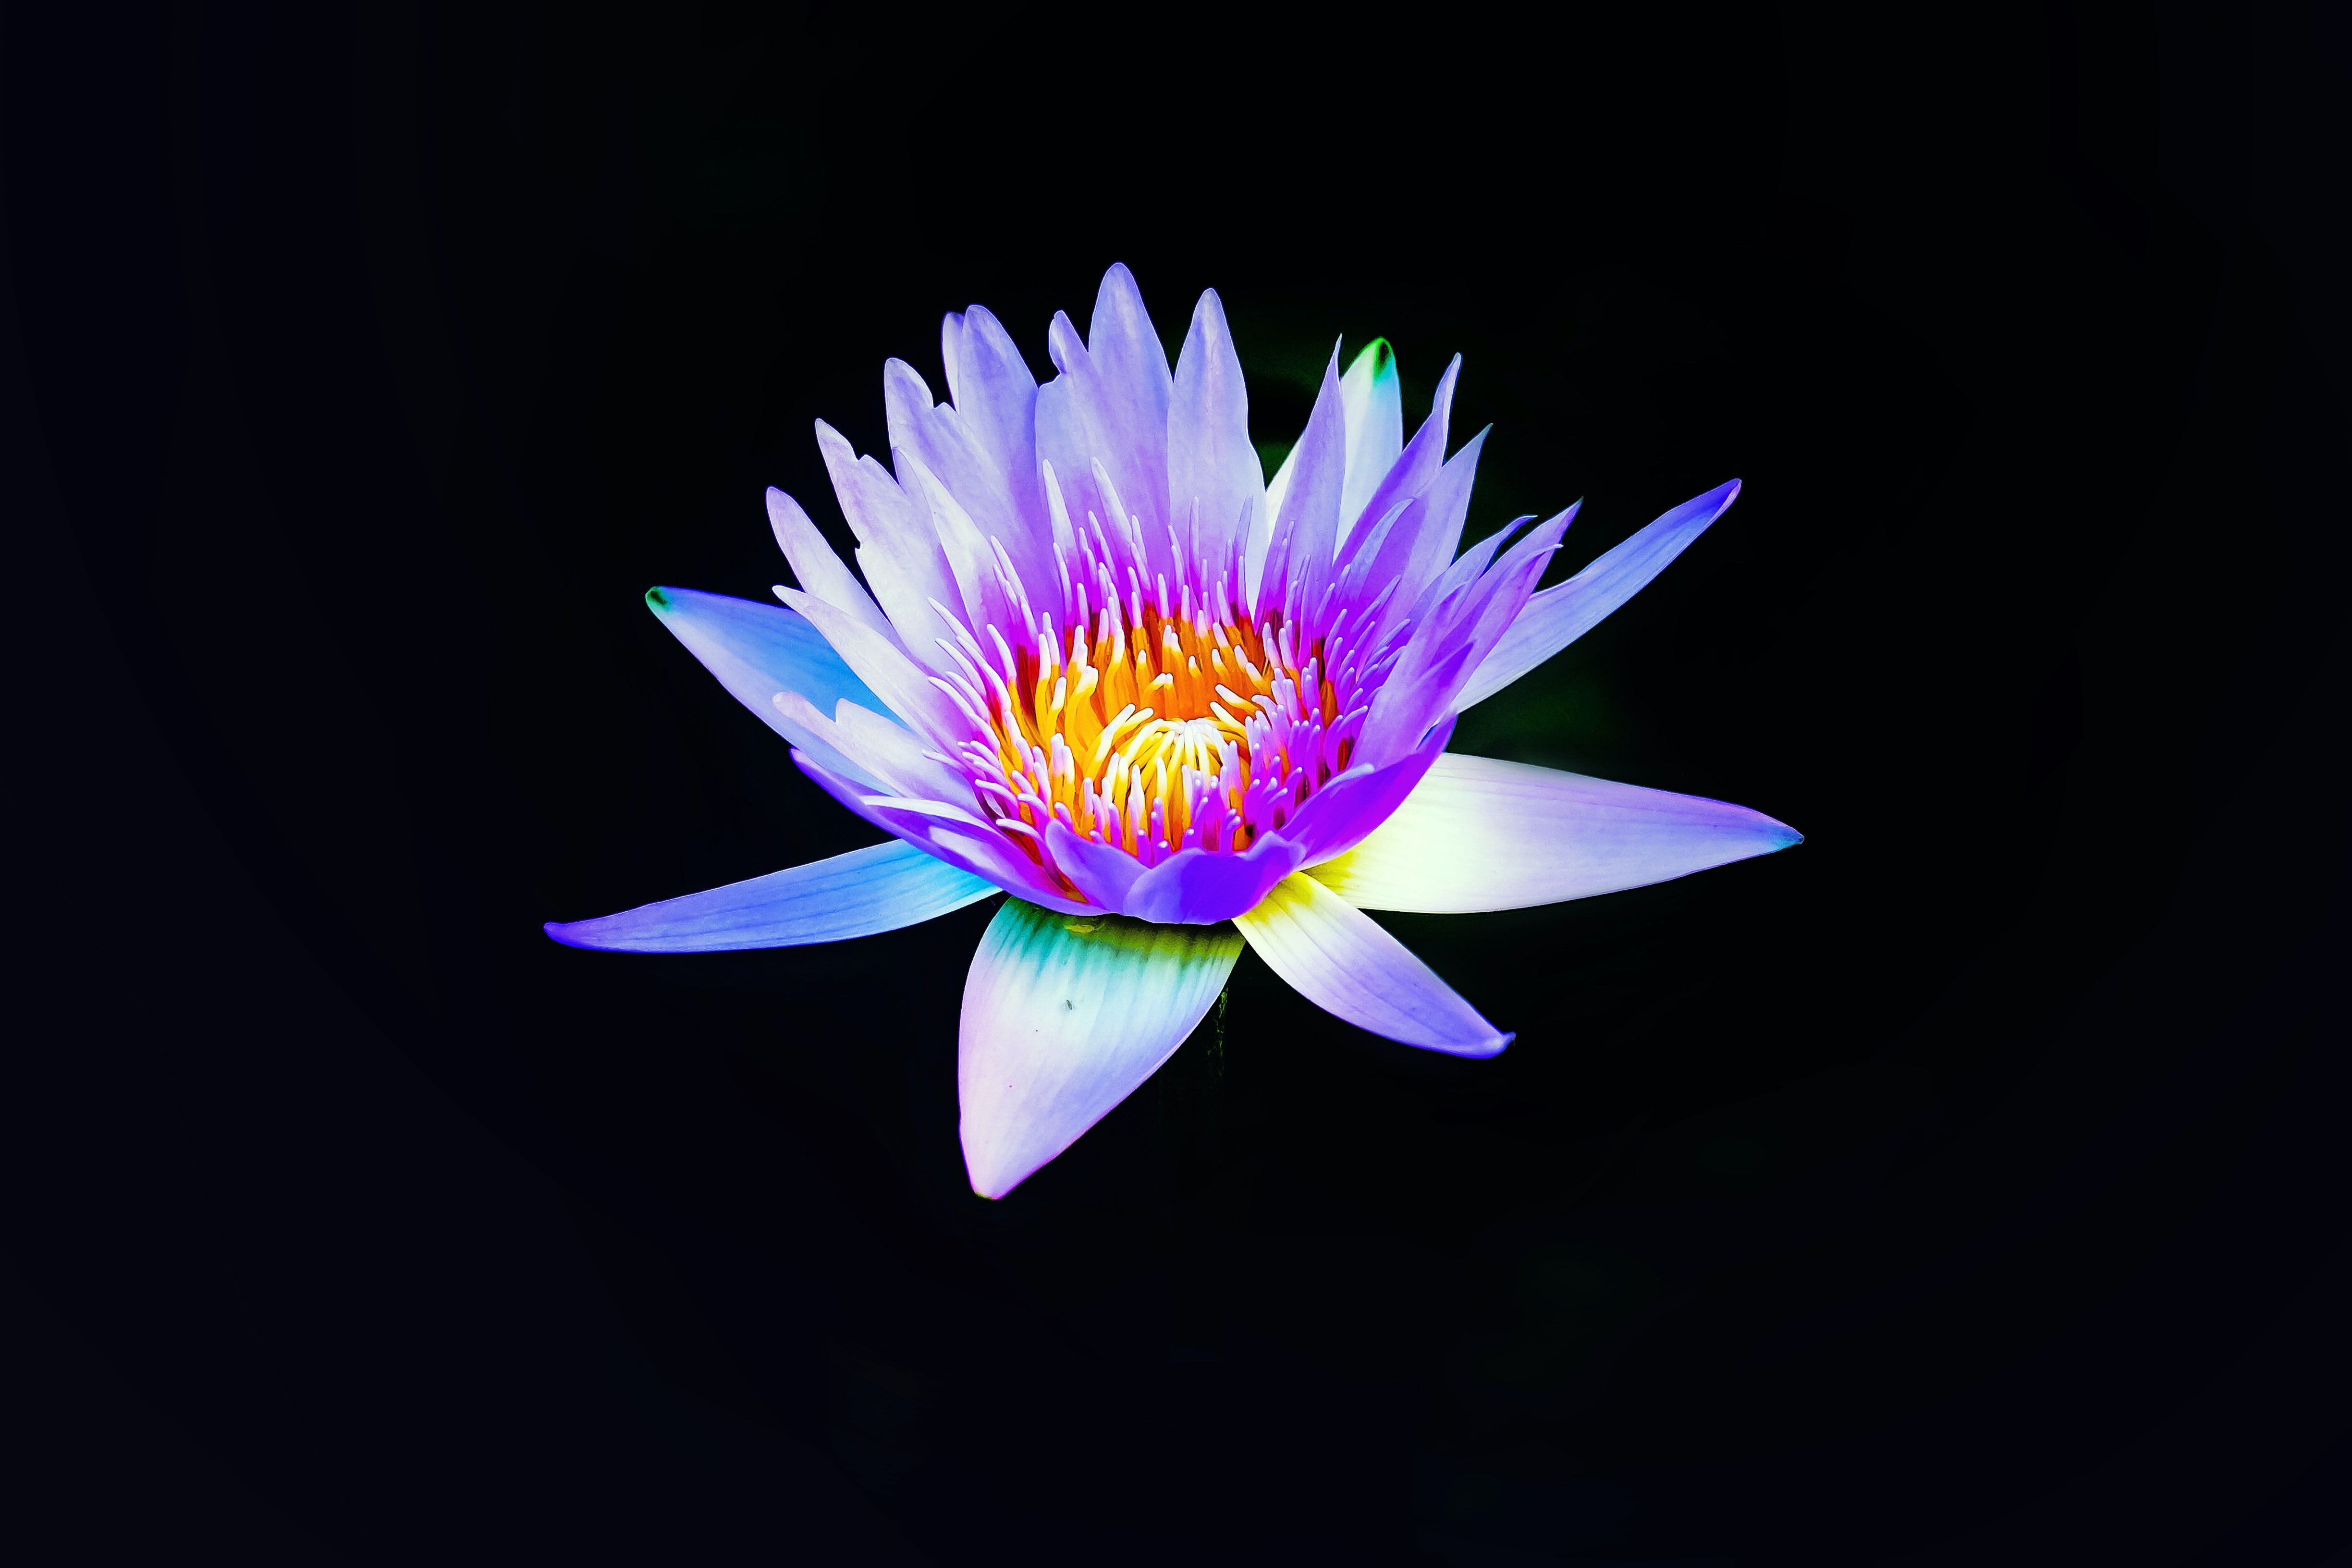 A violet water lily against a black background